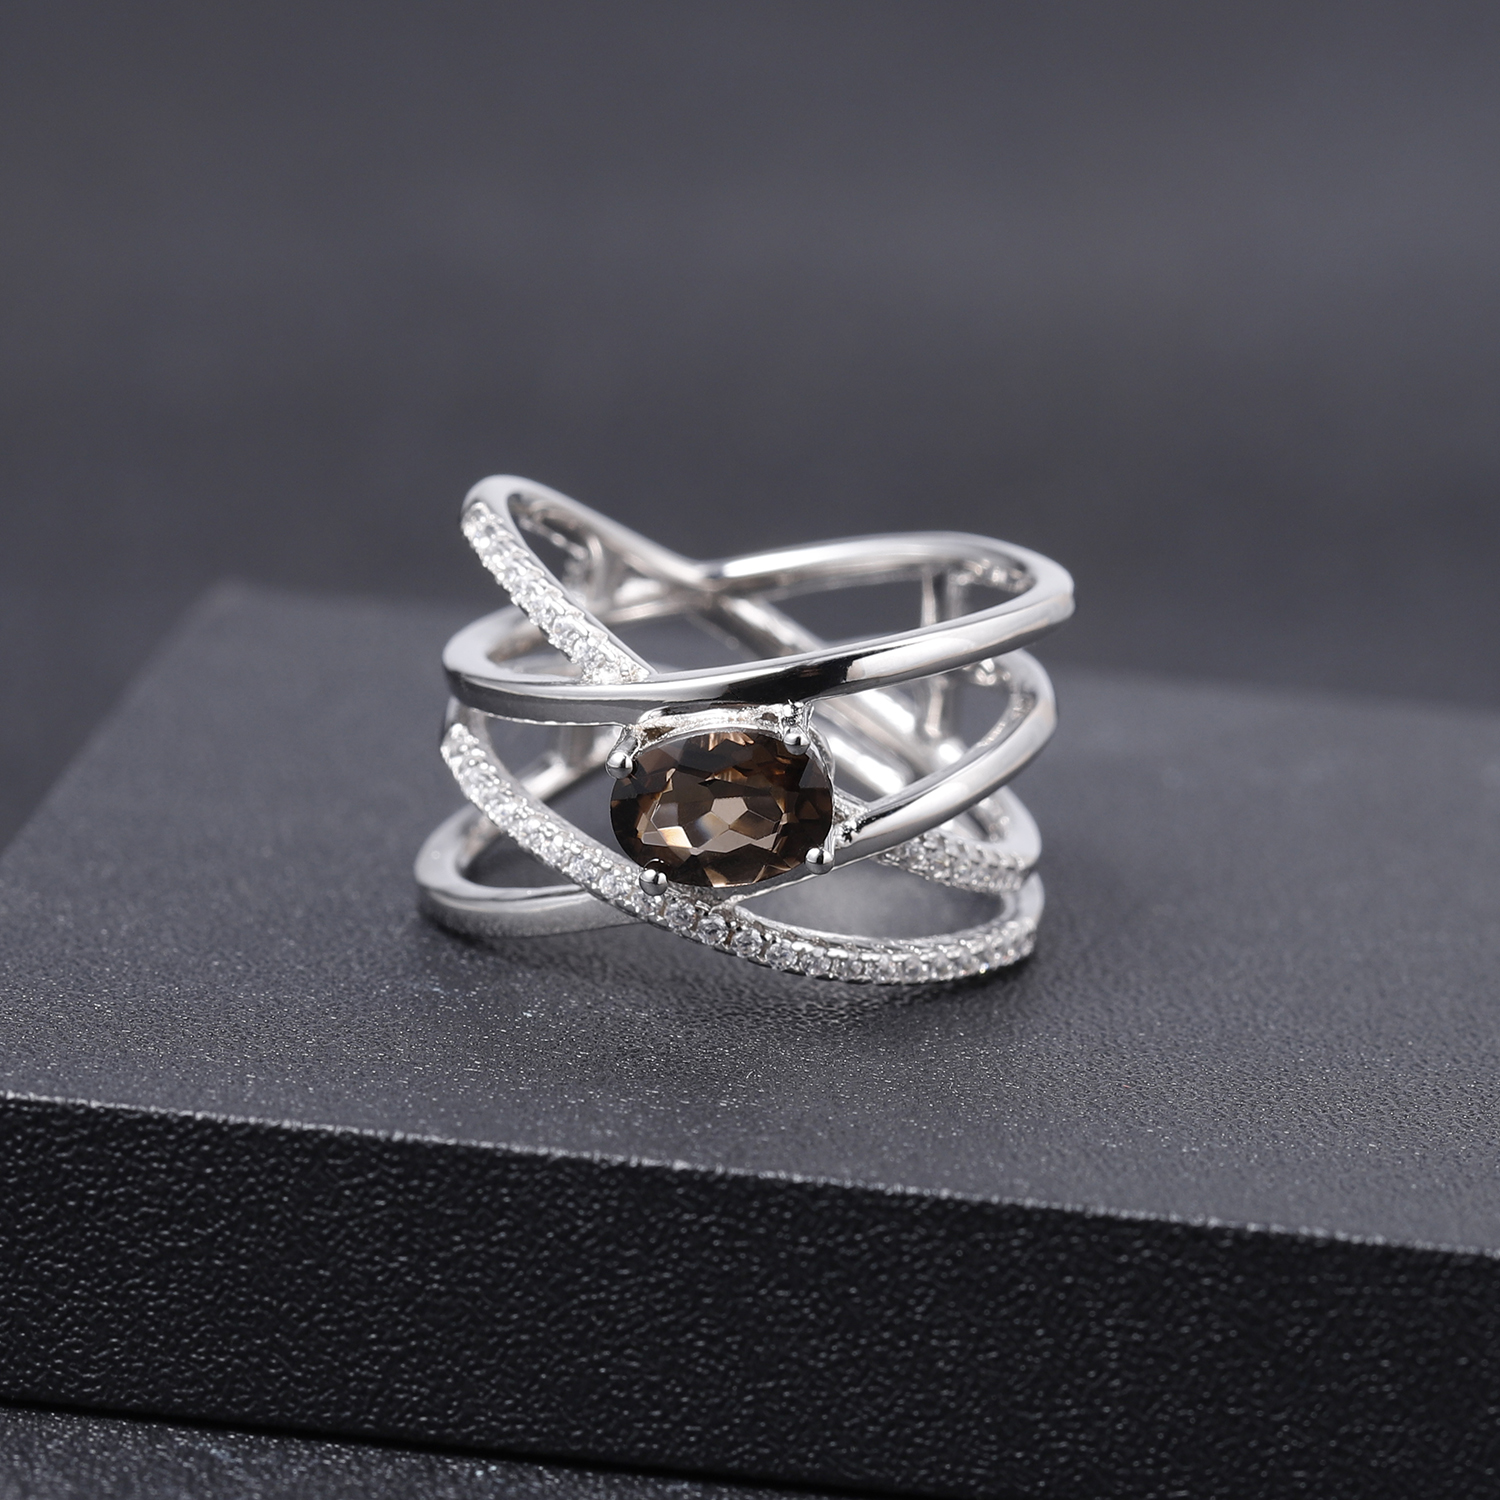 GEM'S BALLET Solid 925 Sterling Silver Cross Finger Ring 0.75Ct Natural Smoky Quartz Gemstone Band Rings For Women Fine Jewelry